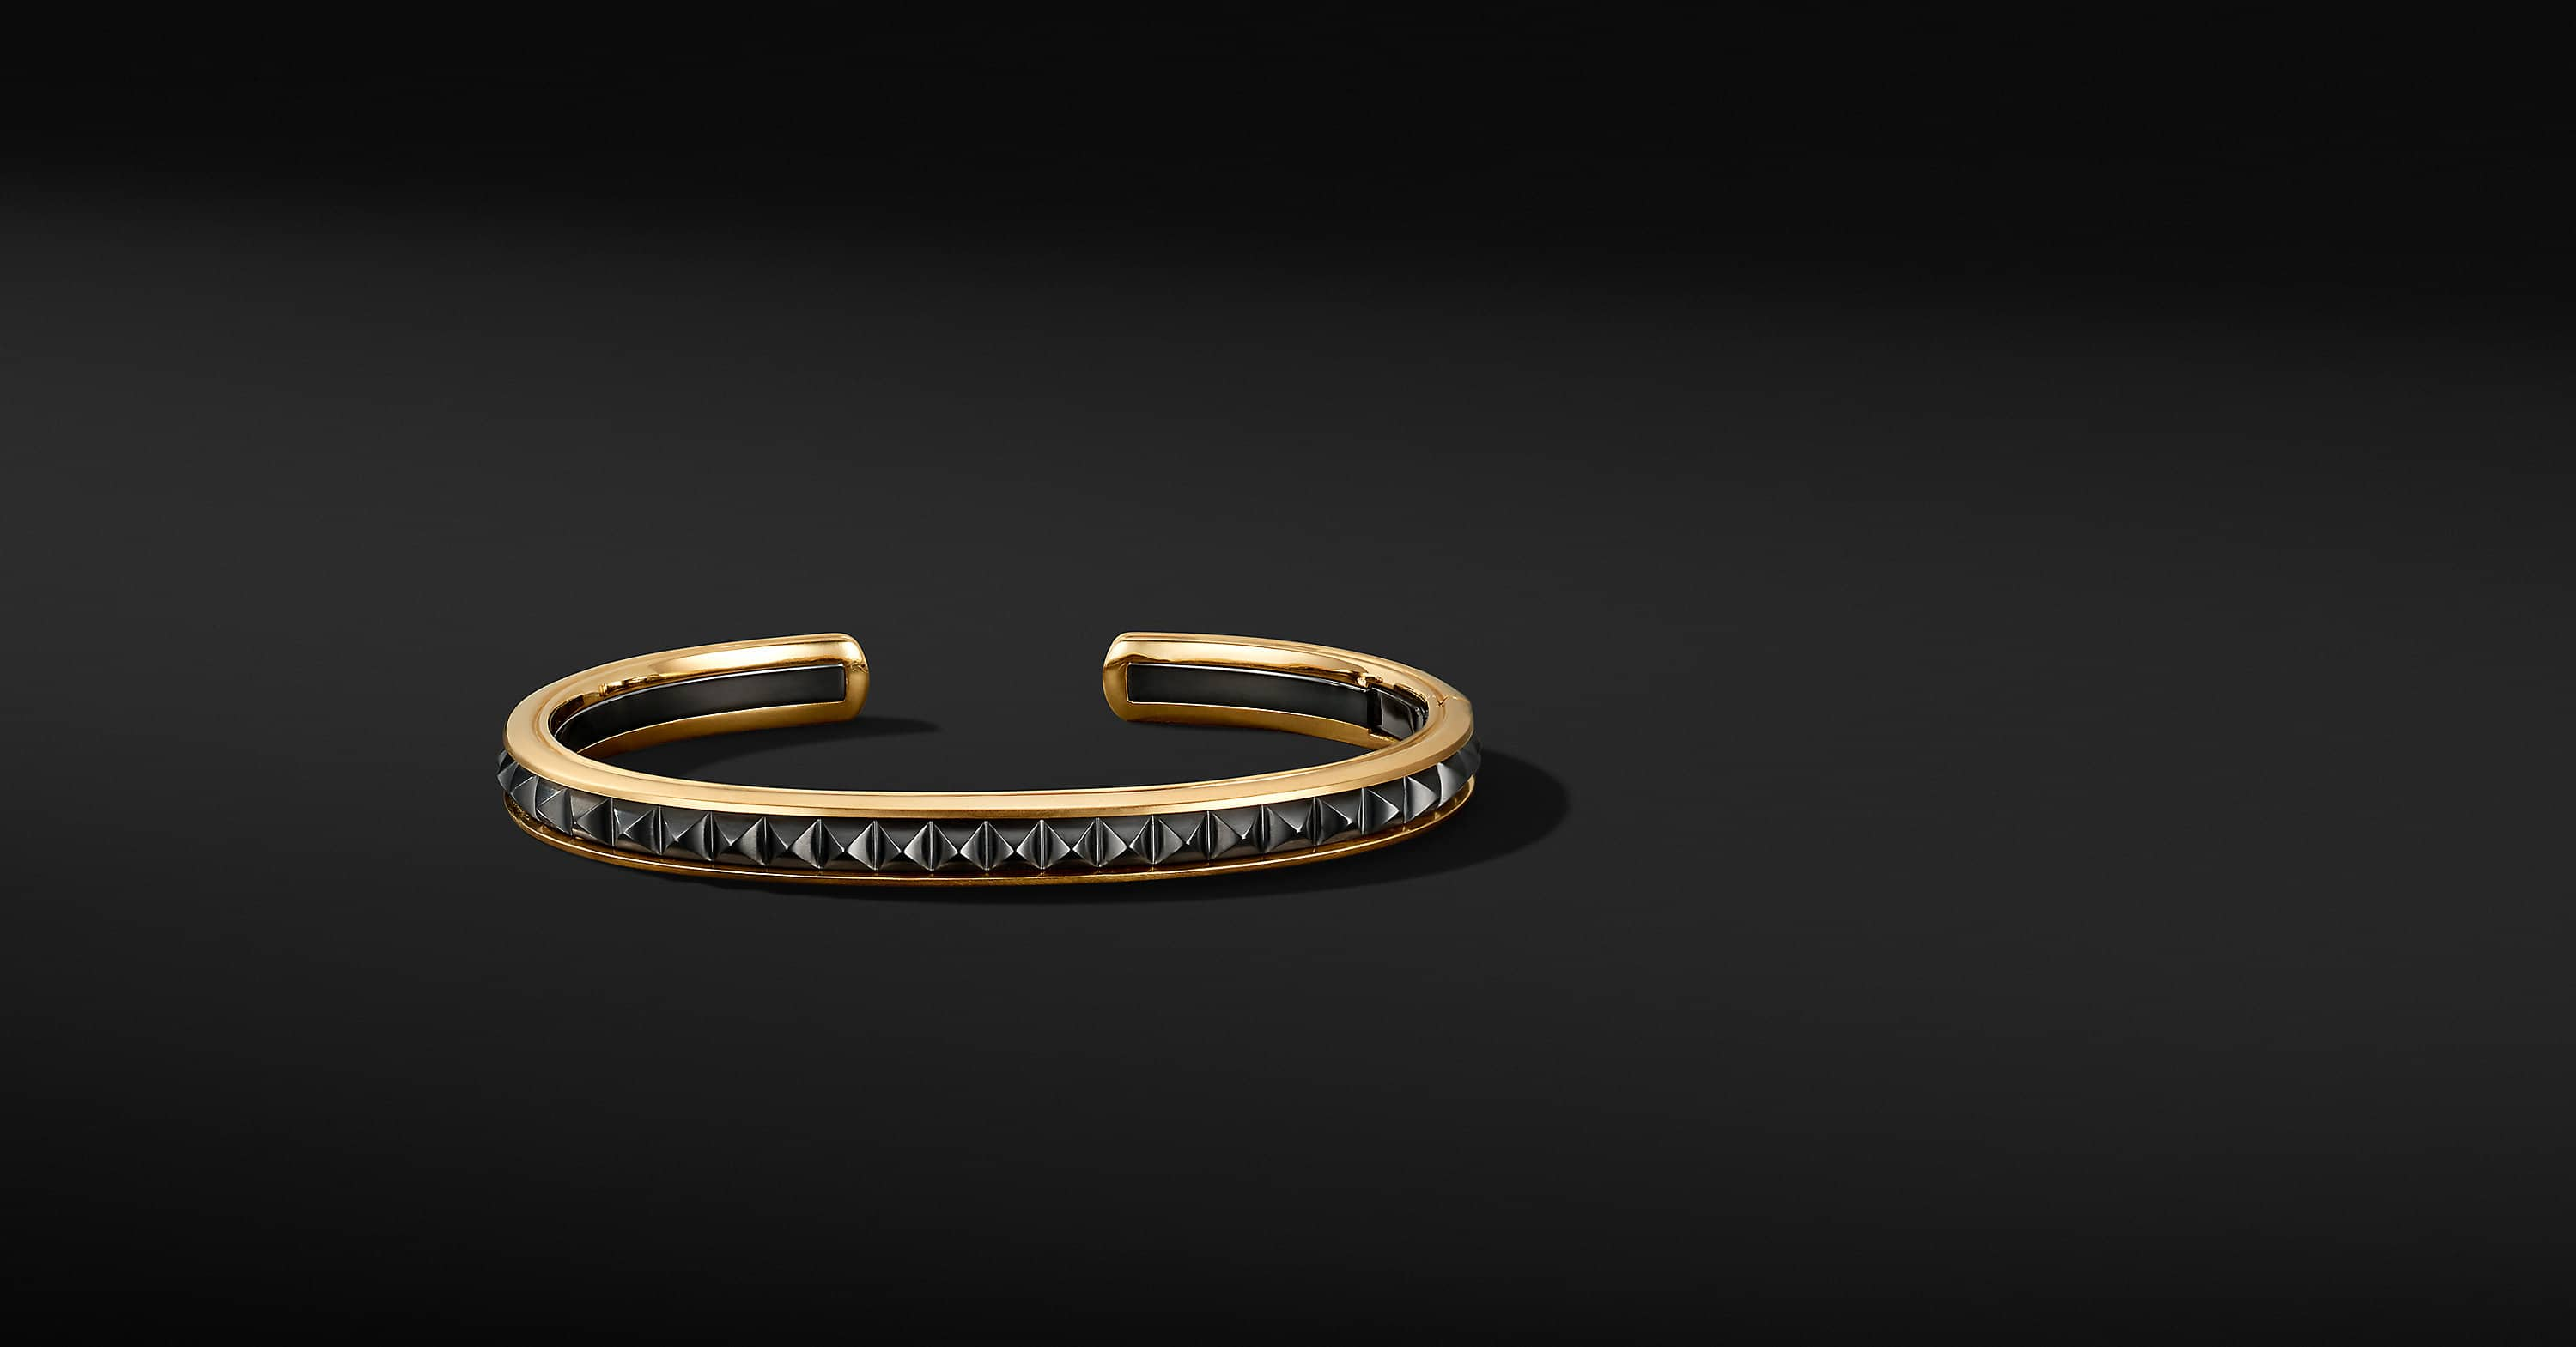 Pyramid Cuff Bracelet in 18K Yellow Gold with Black Titanium, 7mm